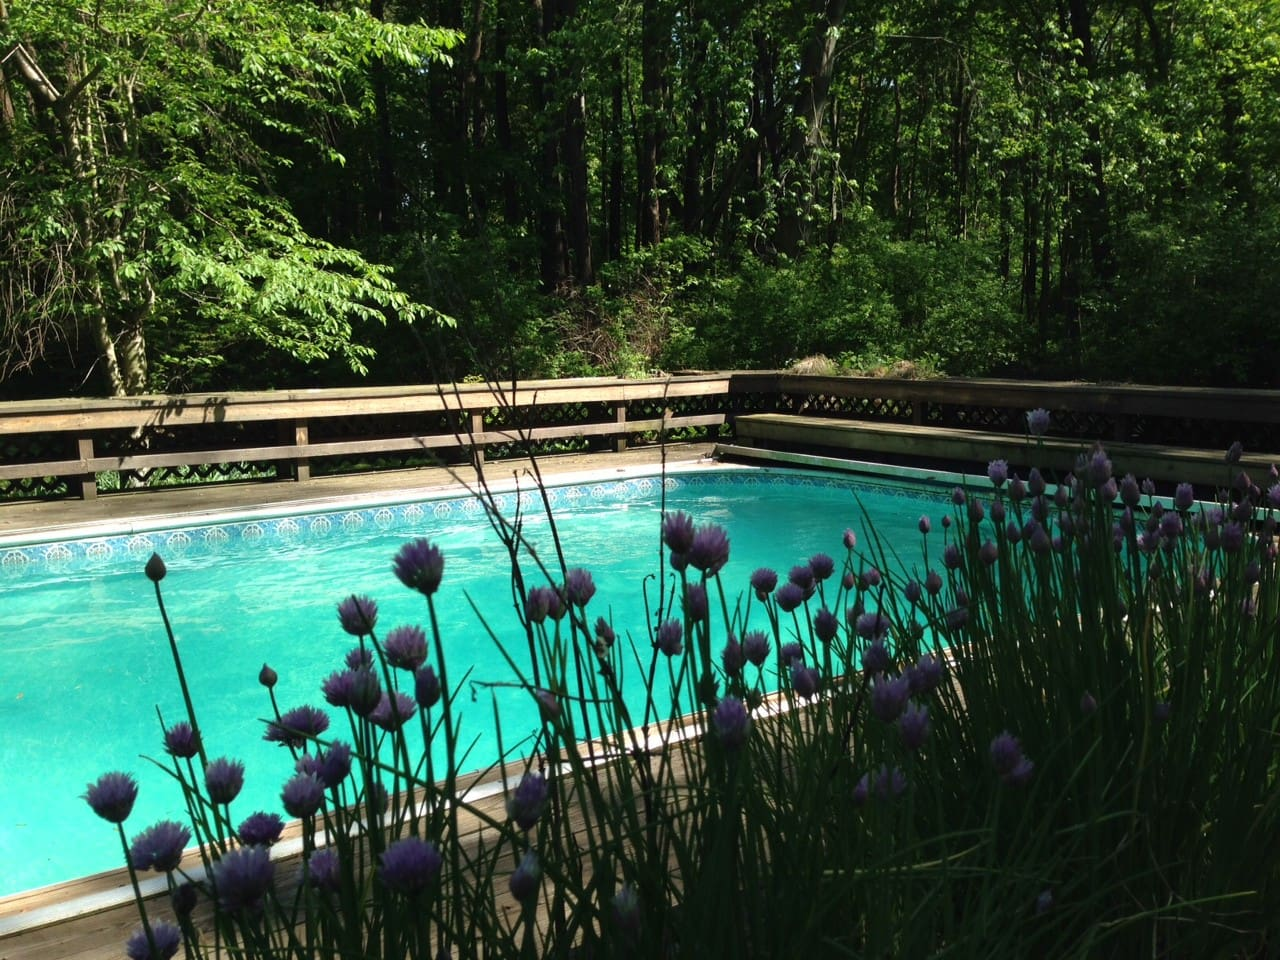 Enjoy your own private pool surrounded by natural plants and trees.